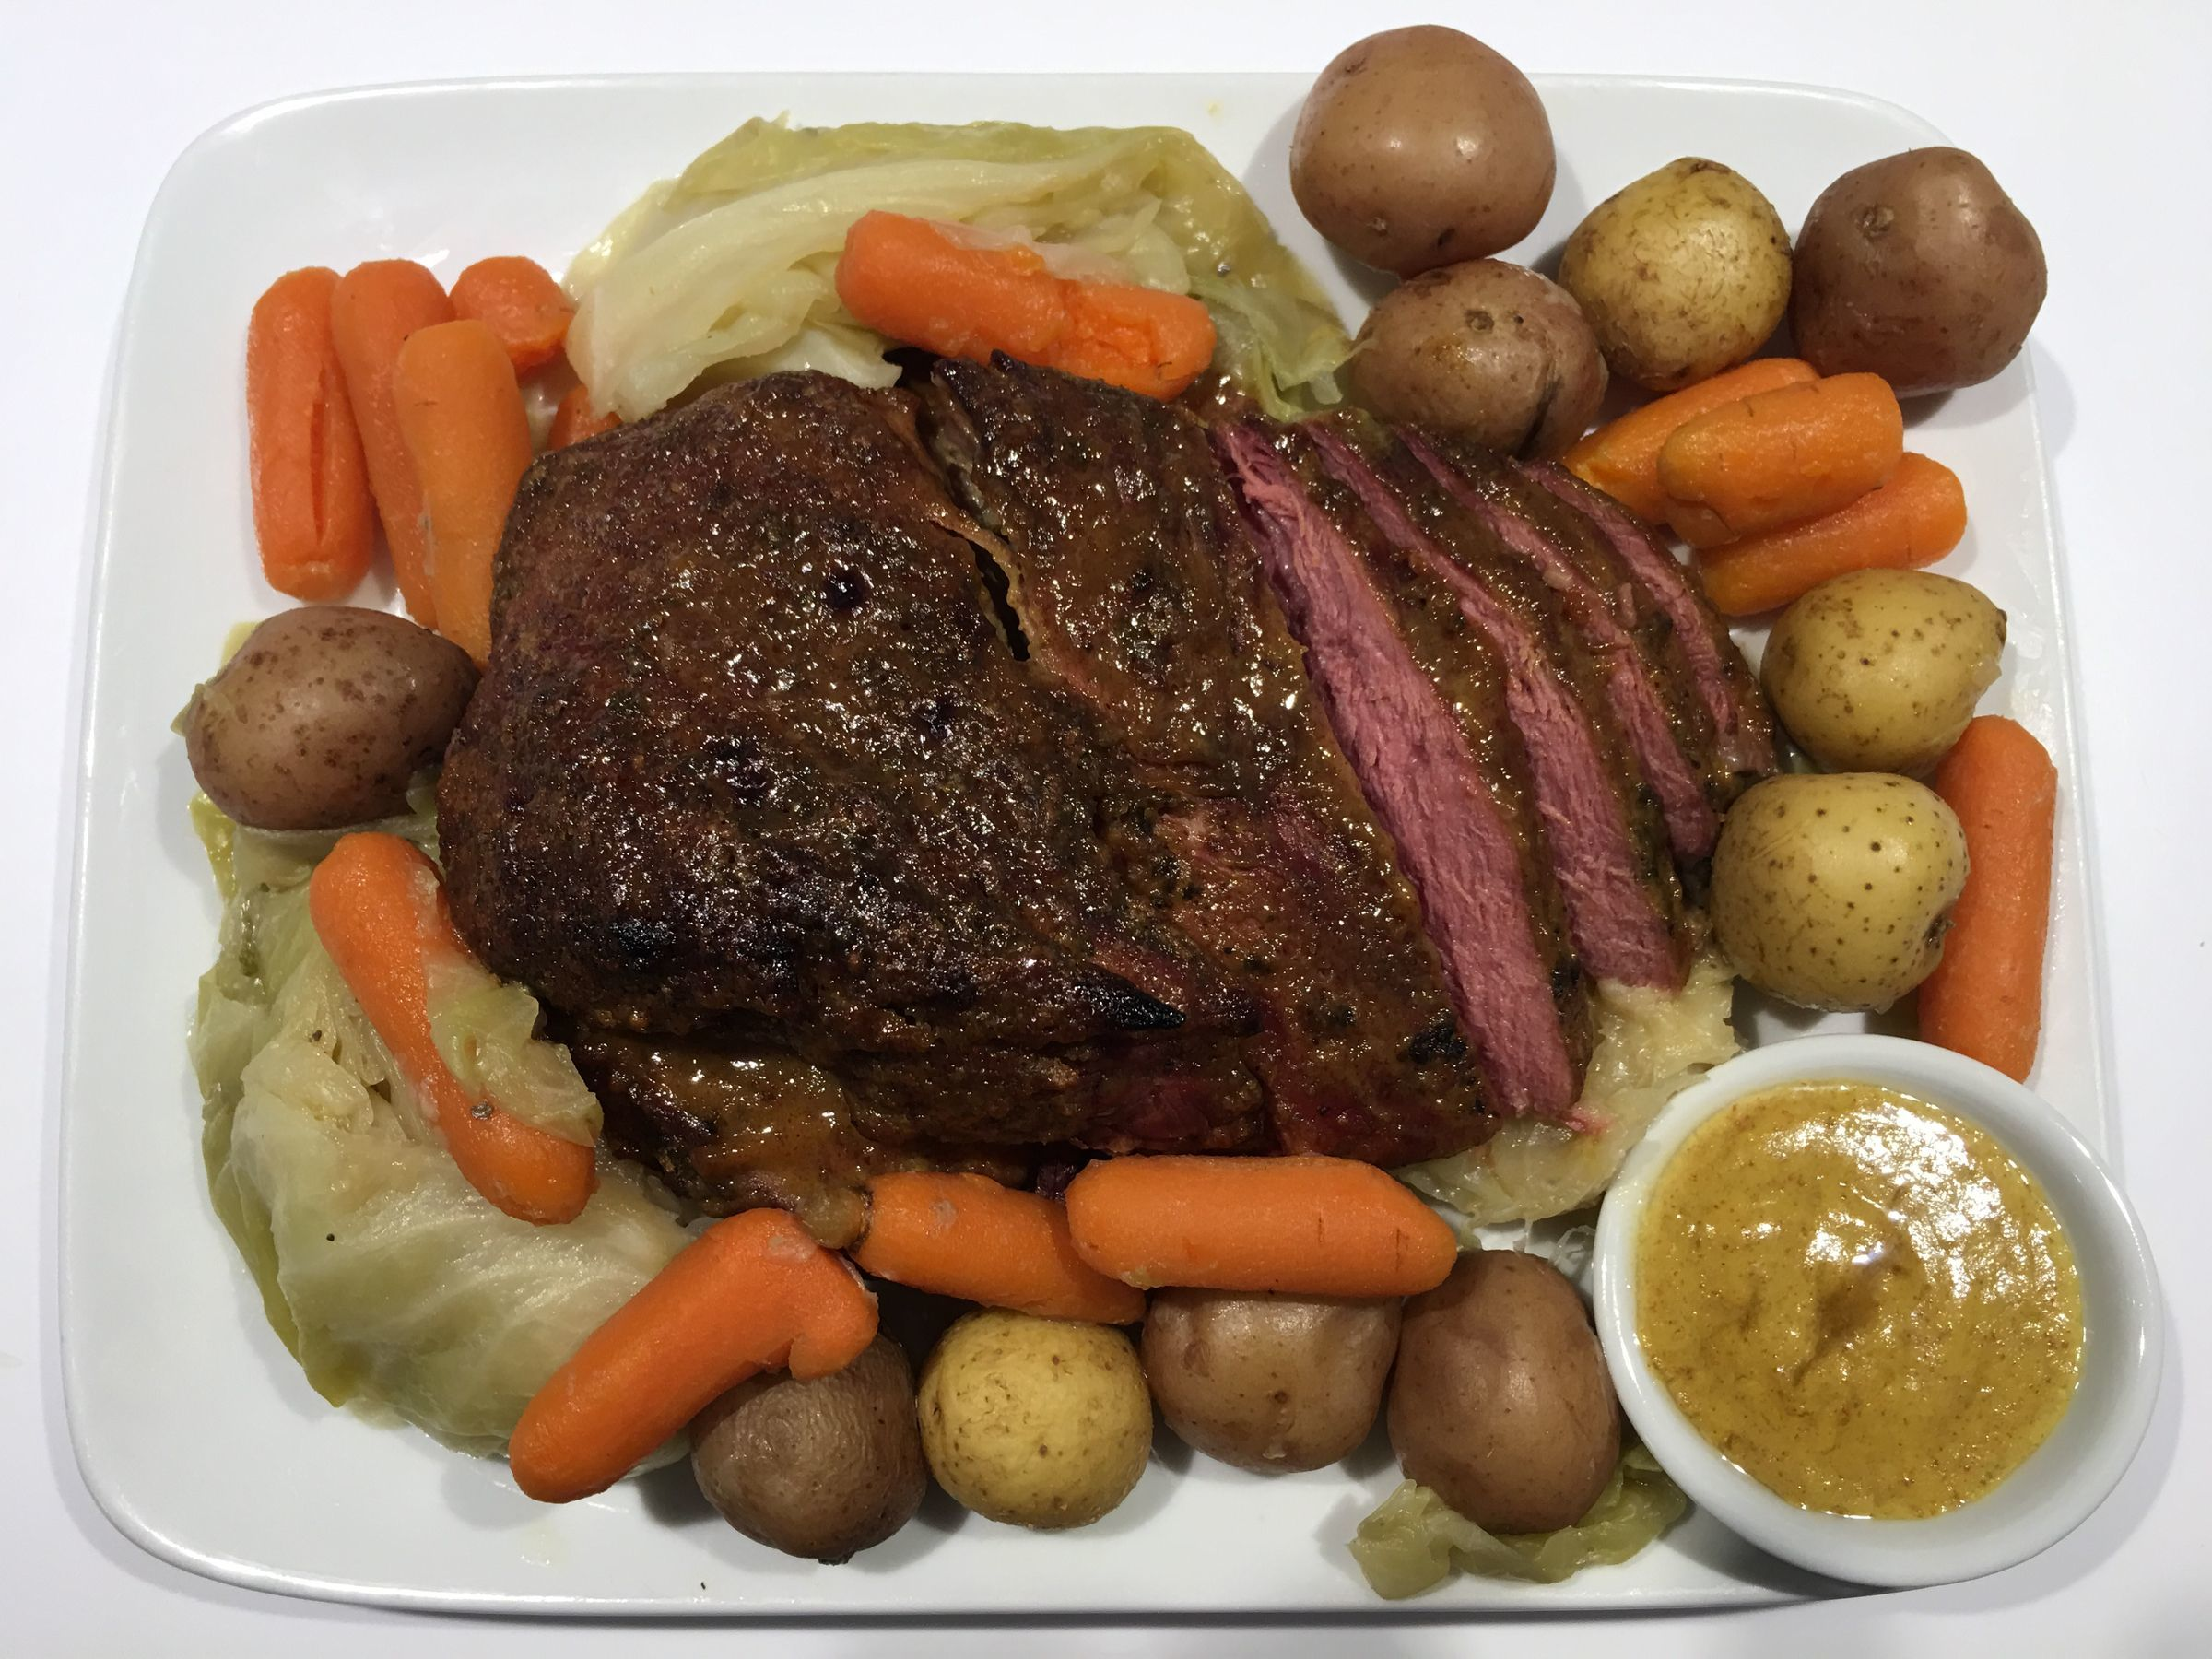 Corned Beef and Cabbage with Mustard Sauce